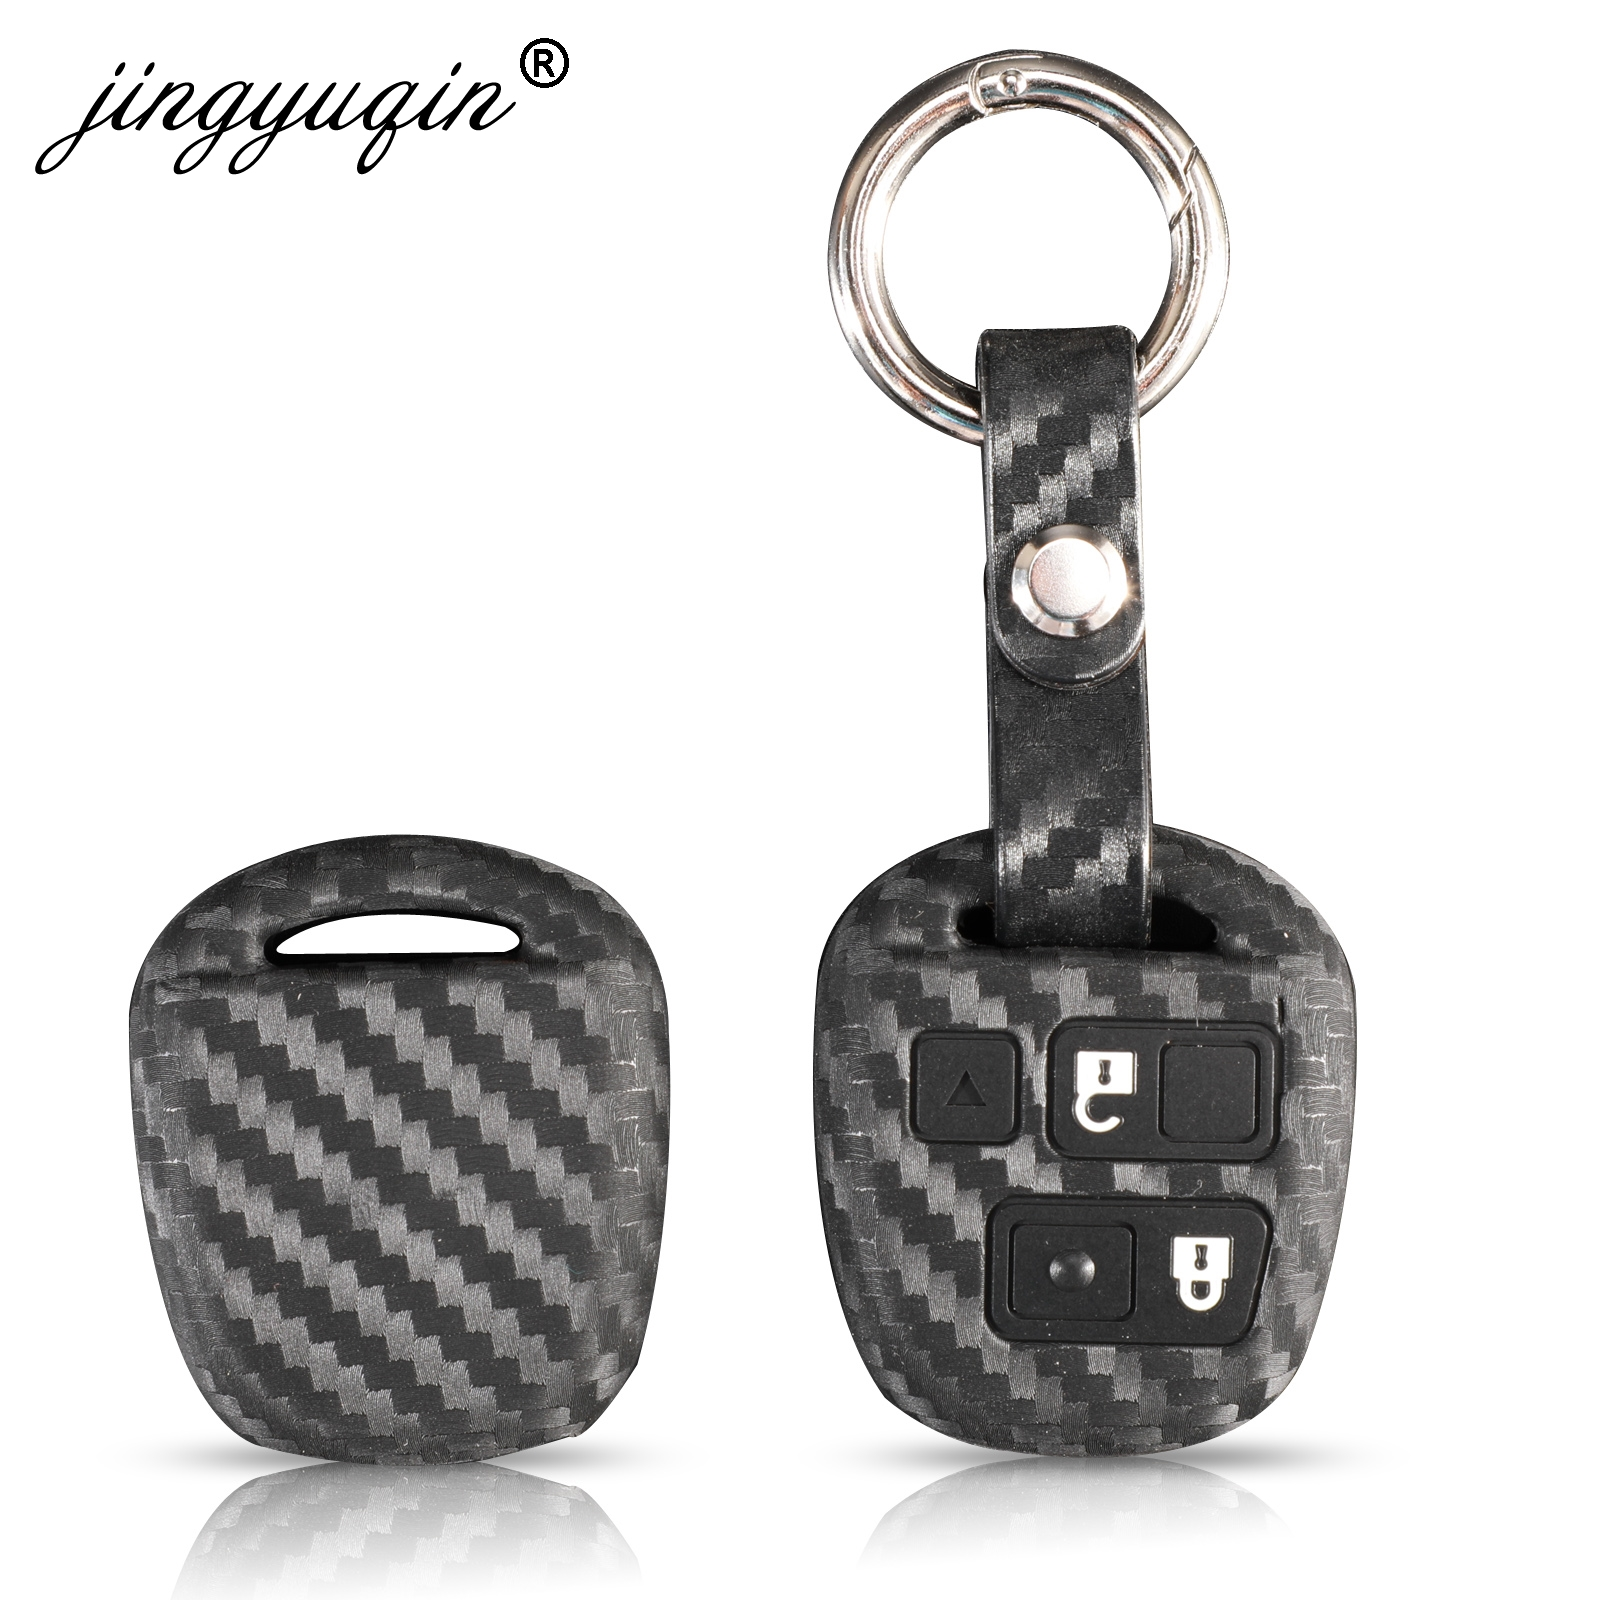 HYFQD Car Key Cover Suit for Toyota,with Keychain Special Soft TPU Key Fob Case for with 2018-2020 Toyota RAV4 Camry Avalon C-HR Prius Corolla Accessories